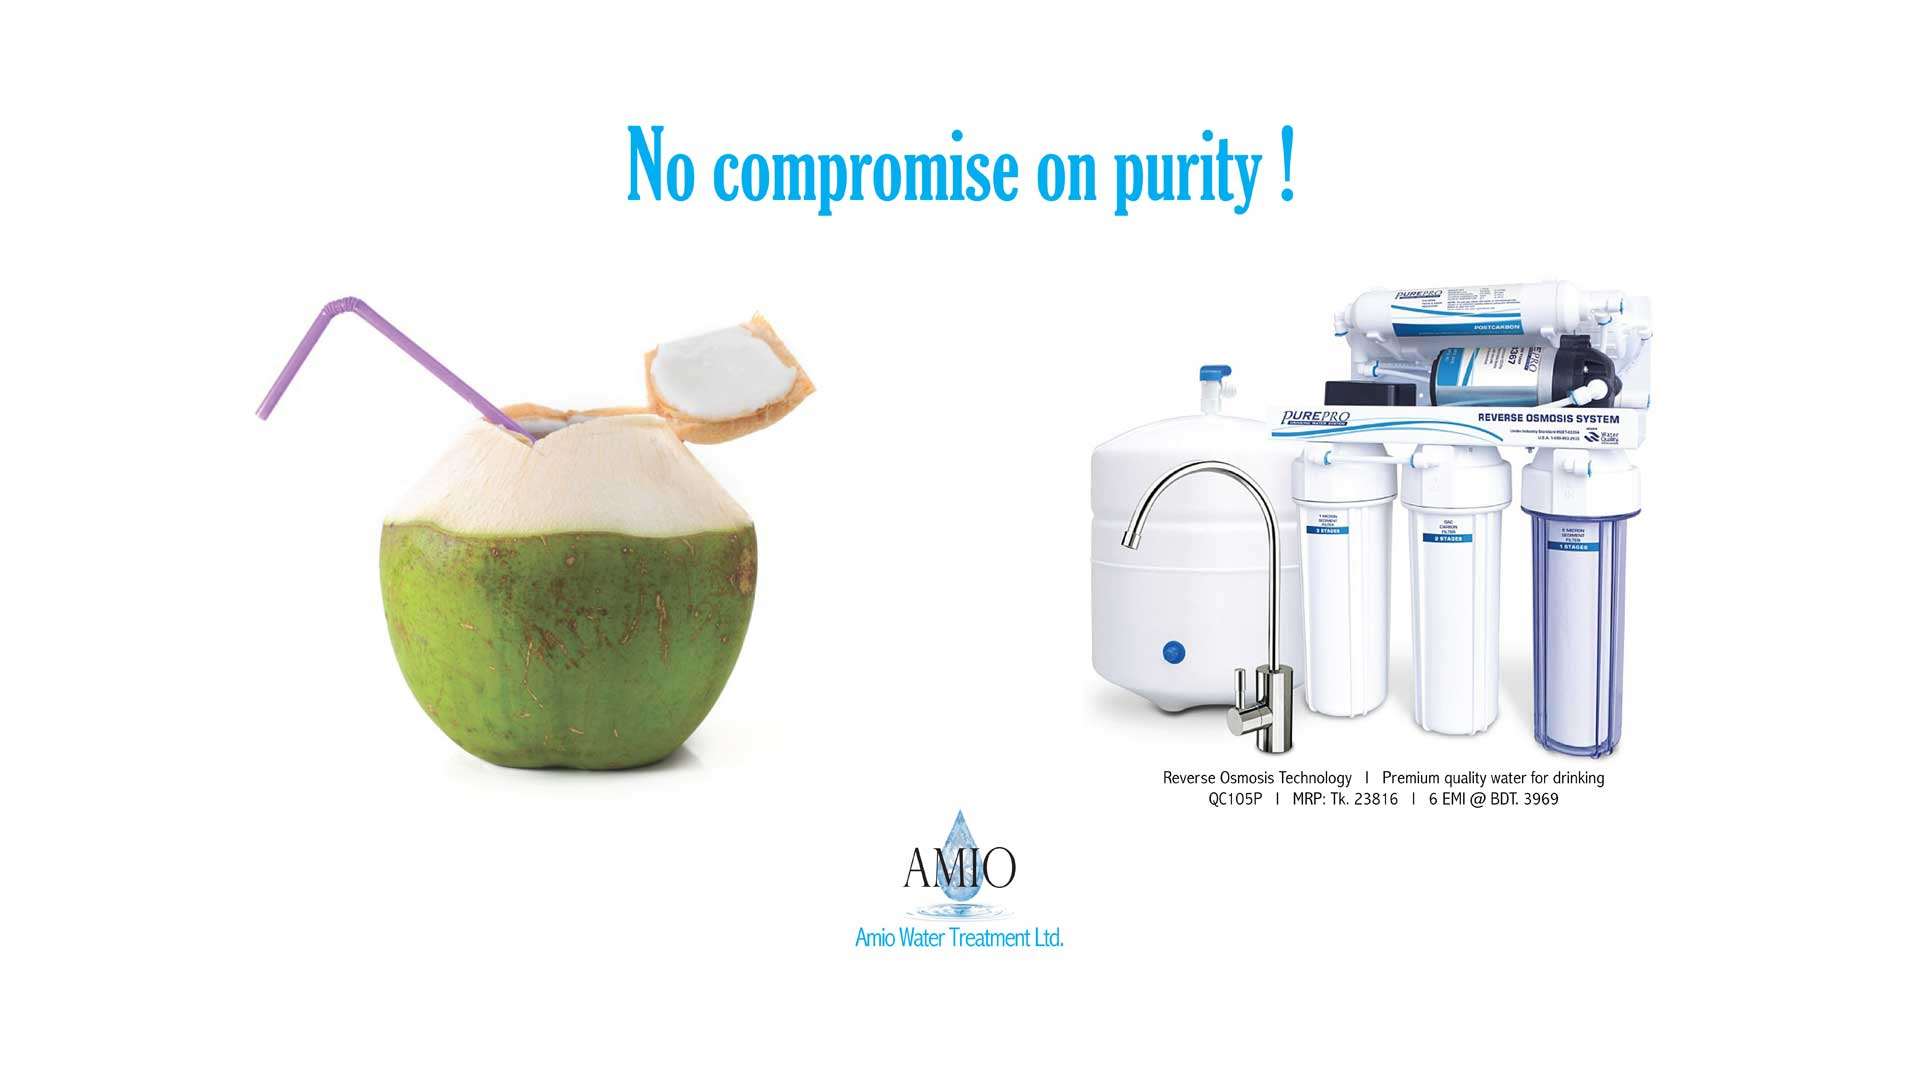 Amio Water | Purity in every drop